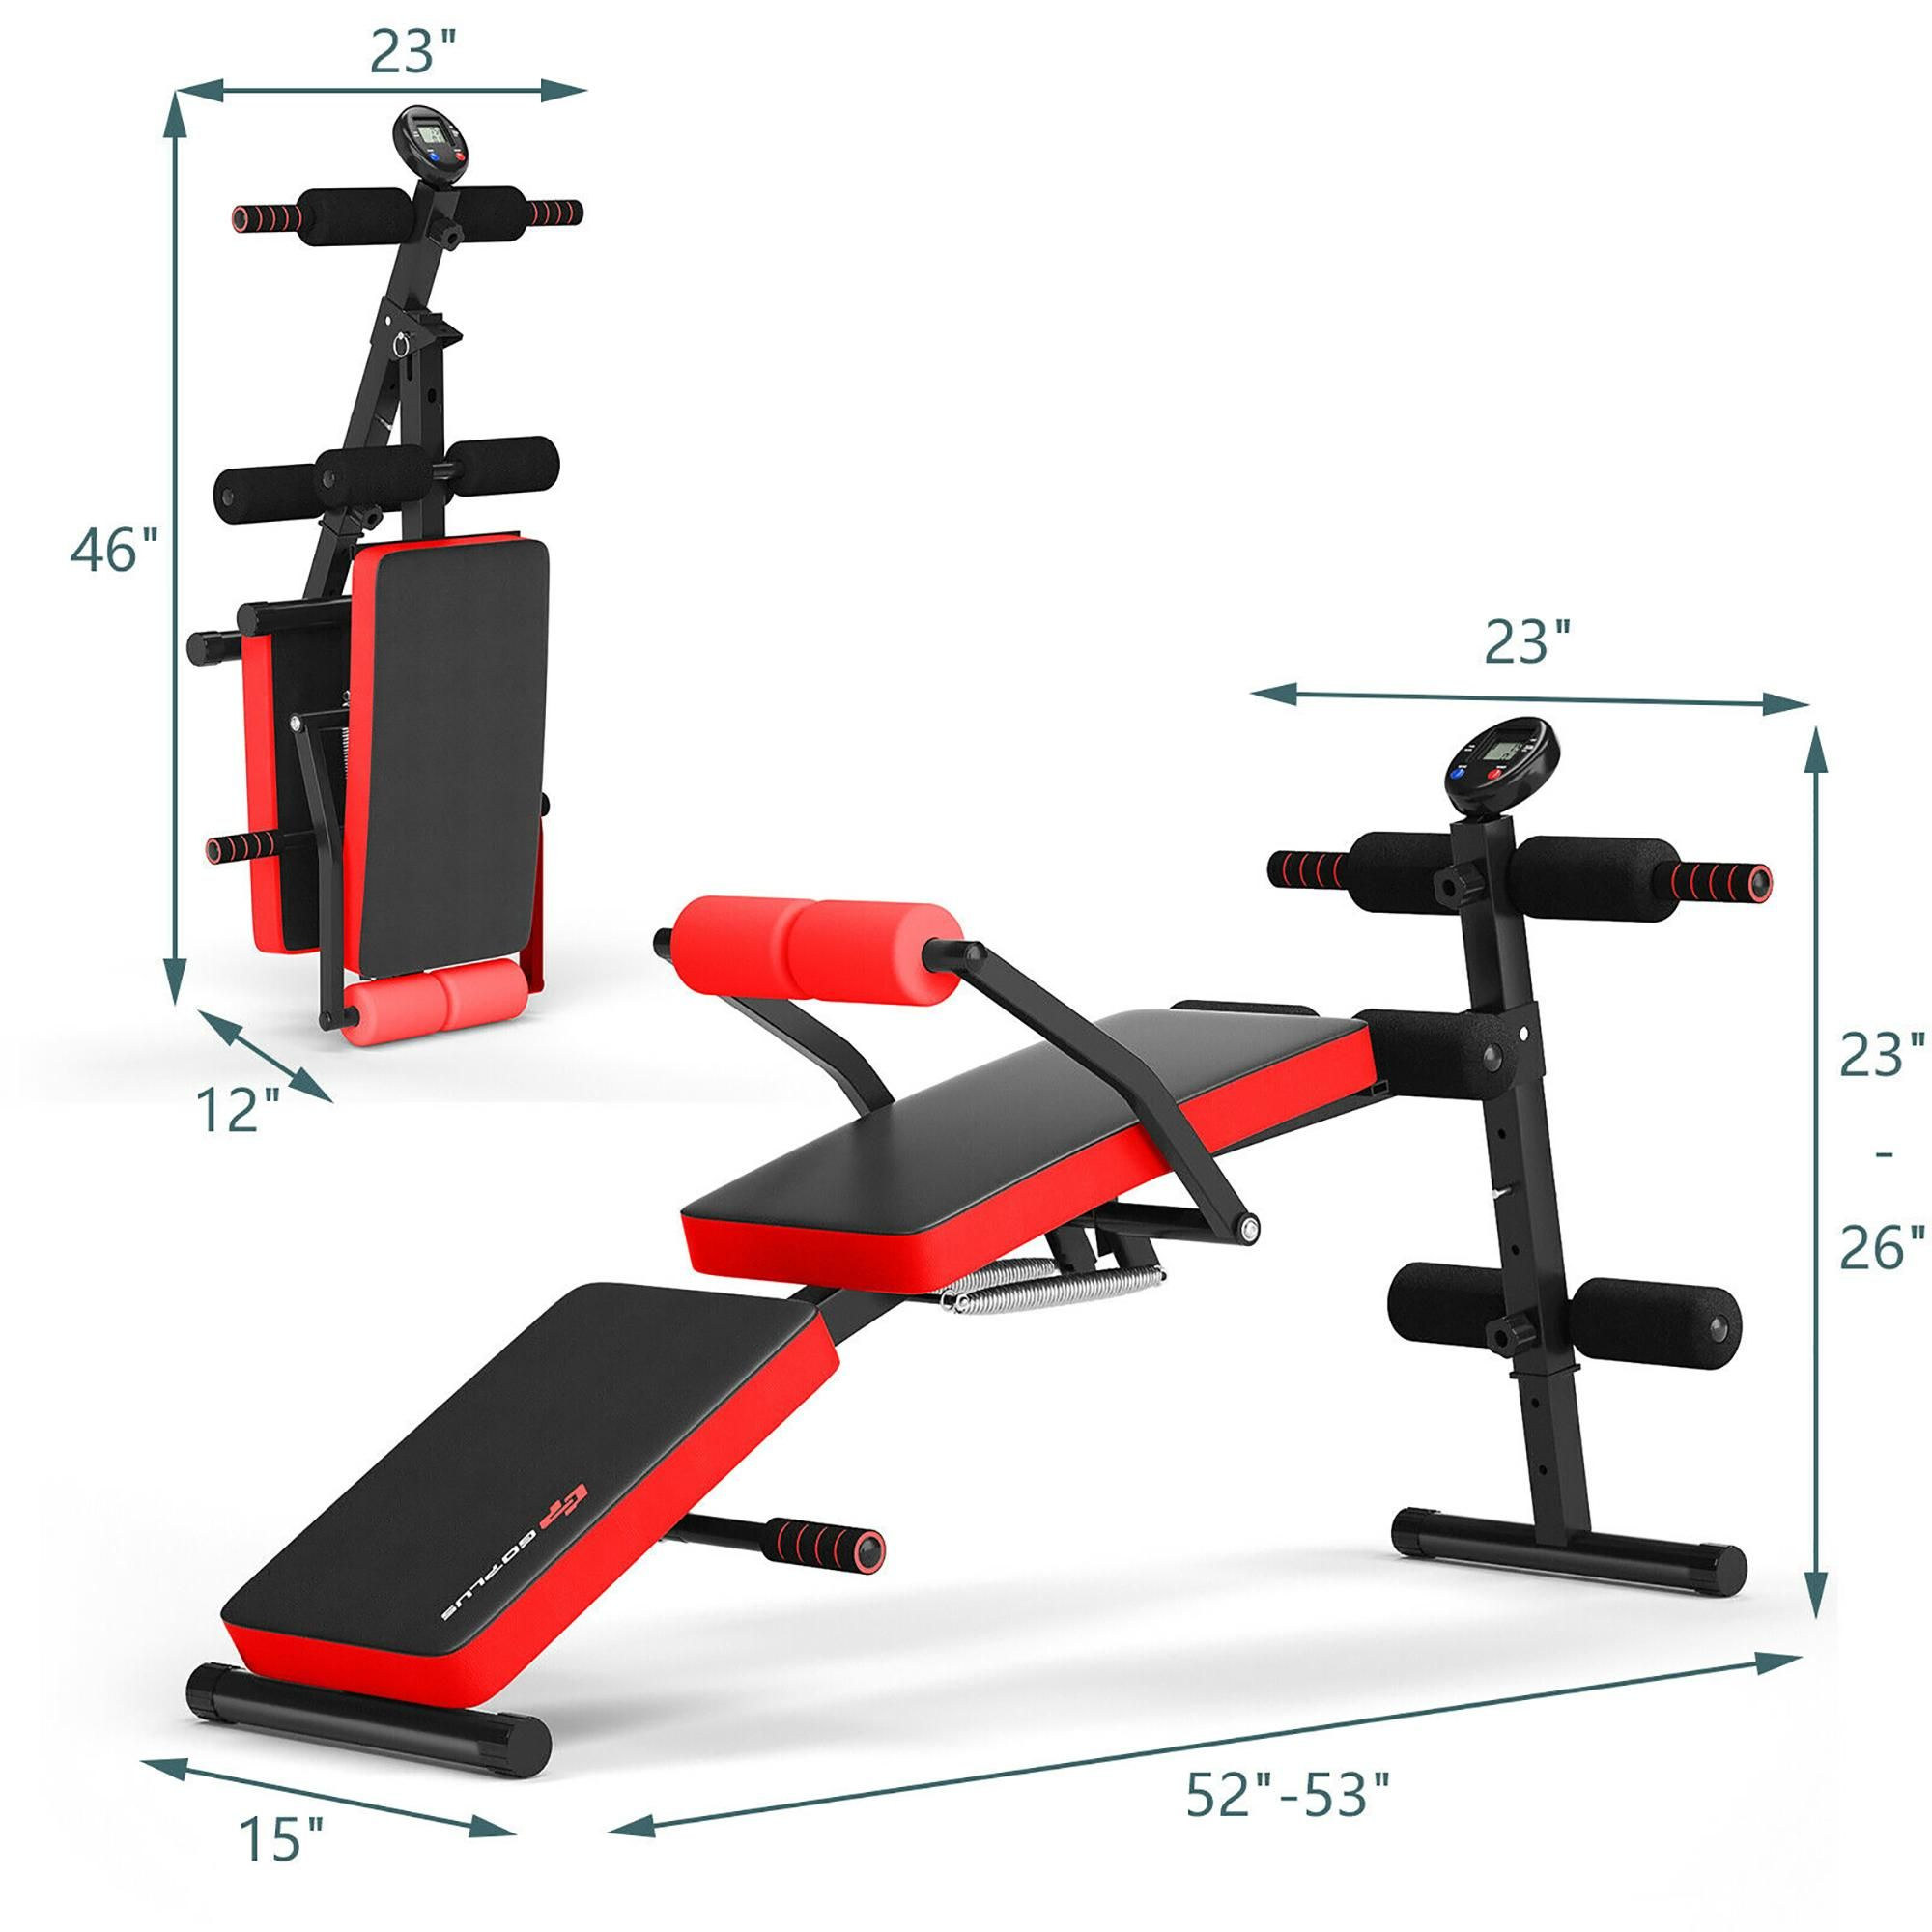 Goplus Multi-Functional Foldable Weight Bench Adjustable Sit-up Board w/ Monitor Red